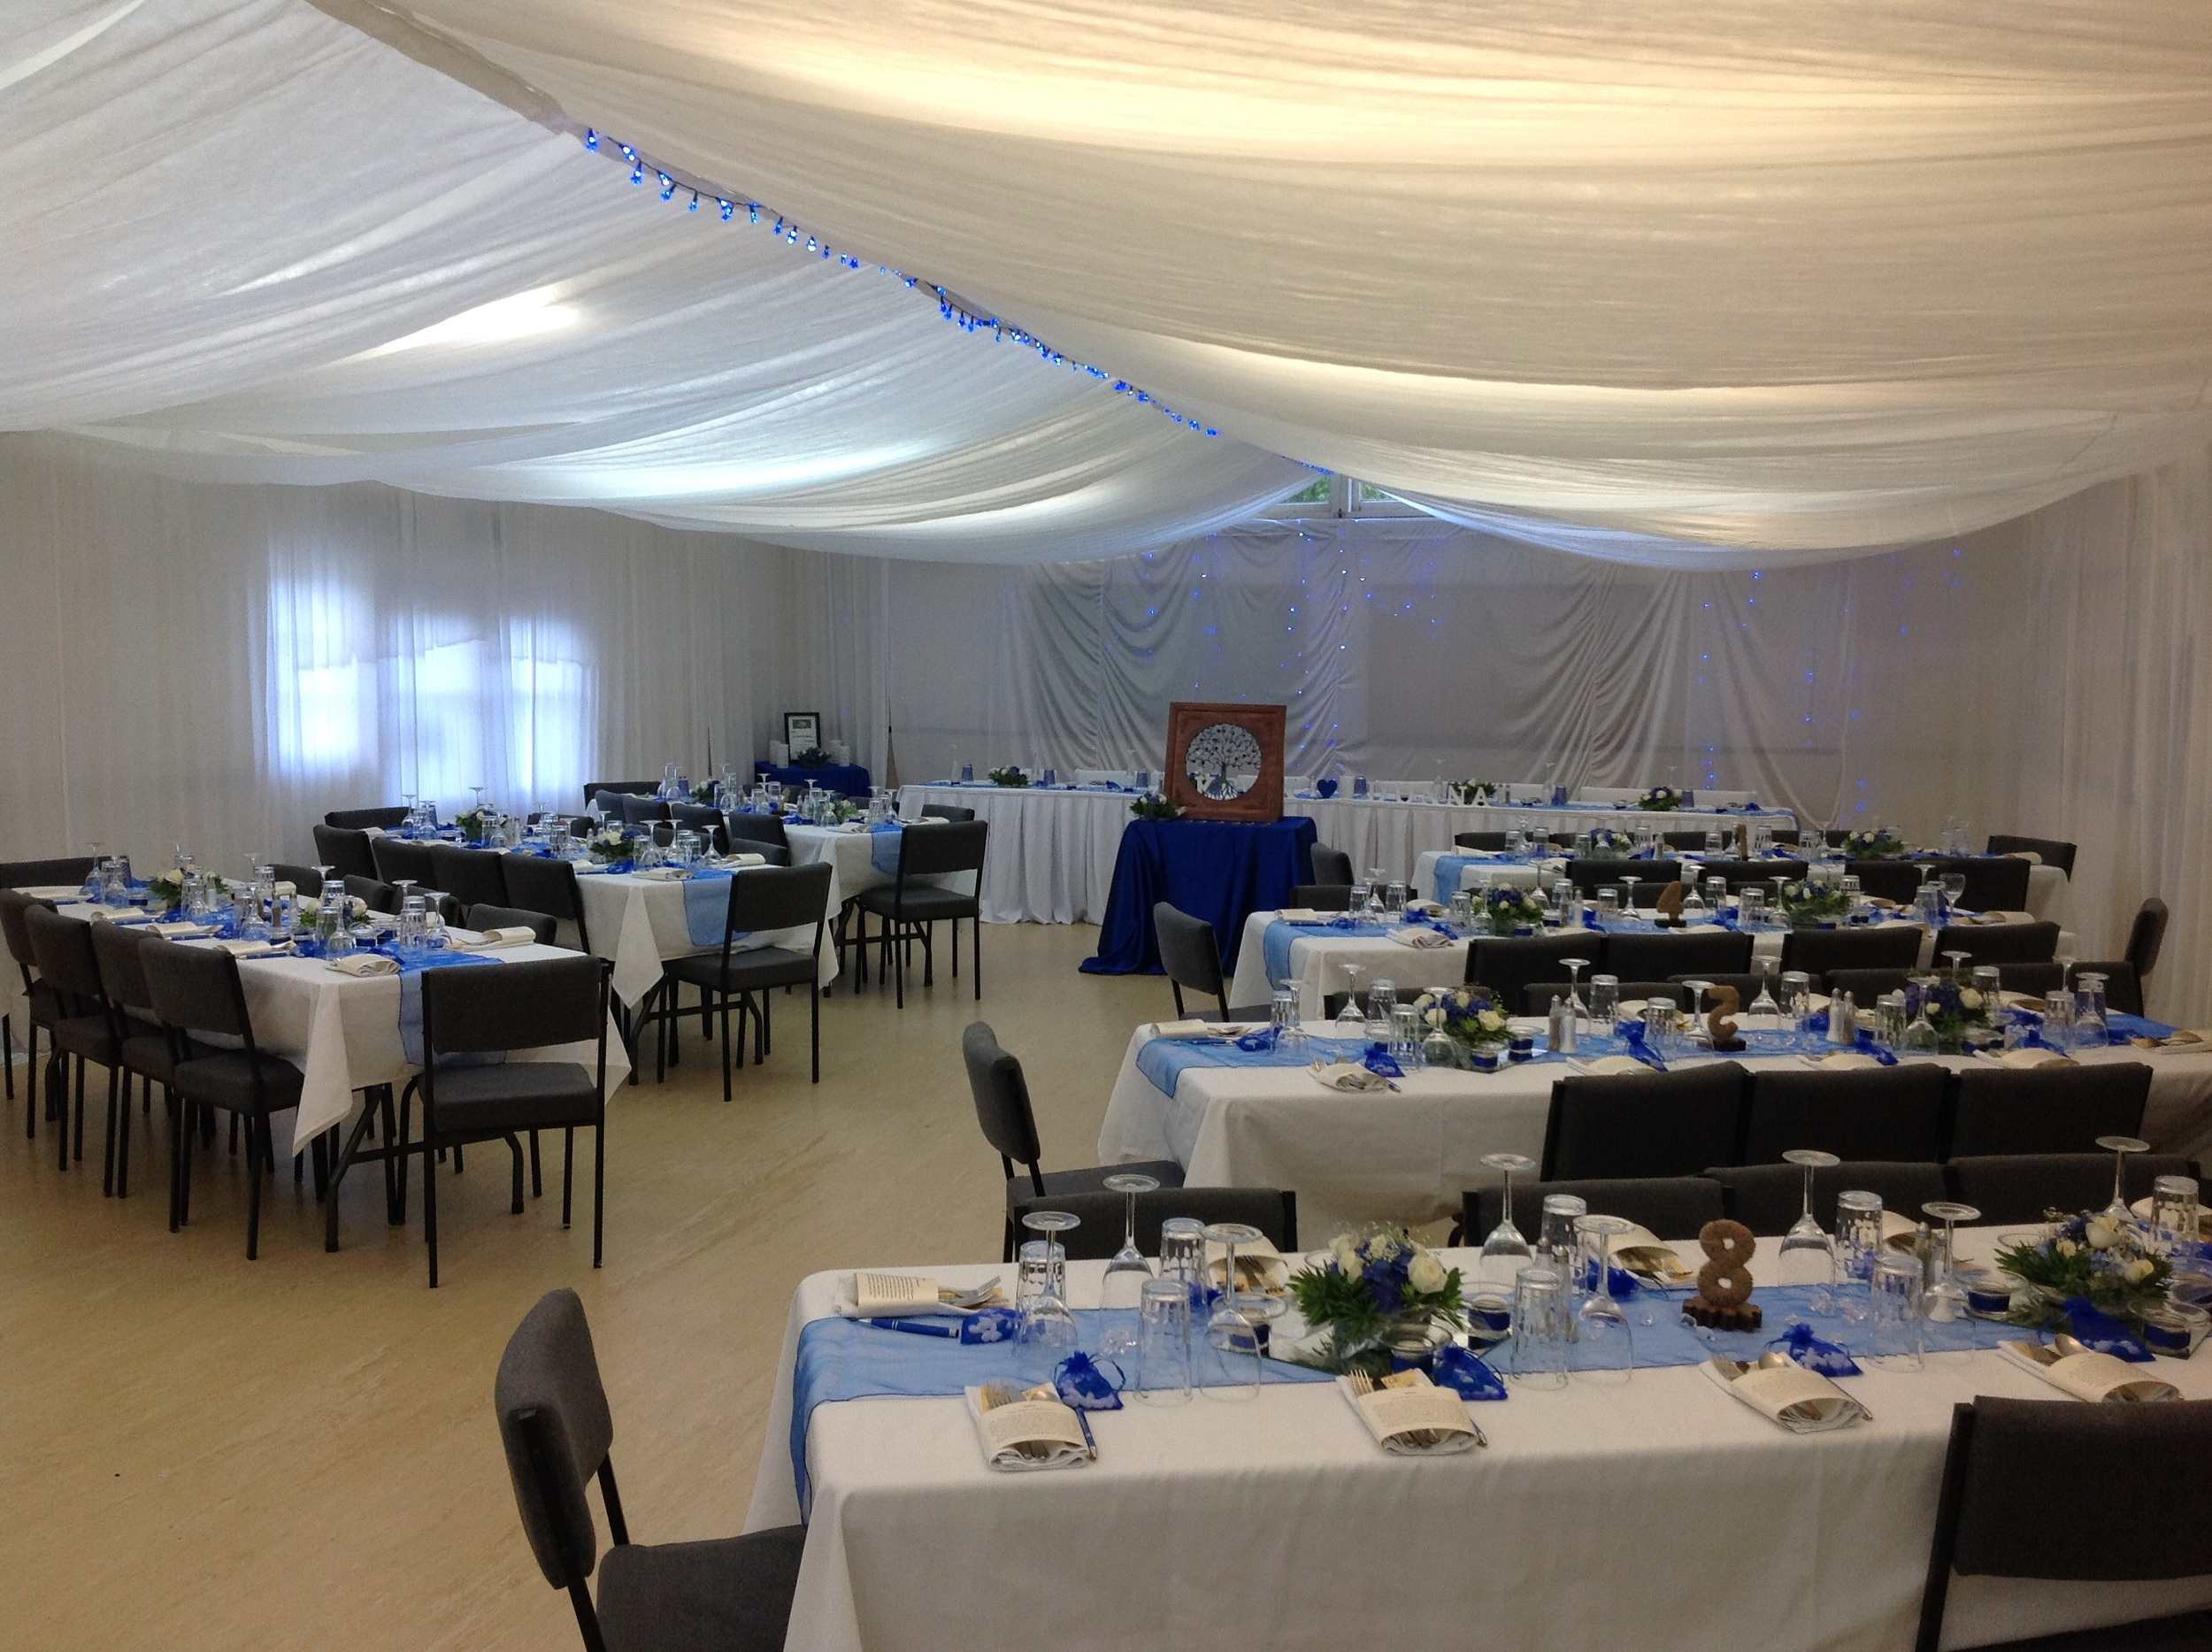 Available for Hire from the Community Hall   150 Chairs with covers; 20 Trestle tables; White or black tablecloths with napkins to match; Bain-maries; Sound system.  Contact: Tania - 092329833, Maggie - 09 2329410, Lorraine - 09 2329923  Overall Camp cleaning services - $300 - 400. Phone Fiona Cruzac 027 493 6882   Hangings, lights, glasses and numerous other decorations can be hired from Christine Ramsey, 09 232 9619